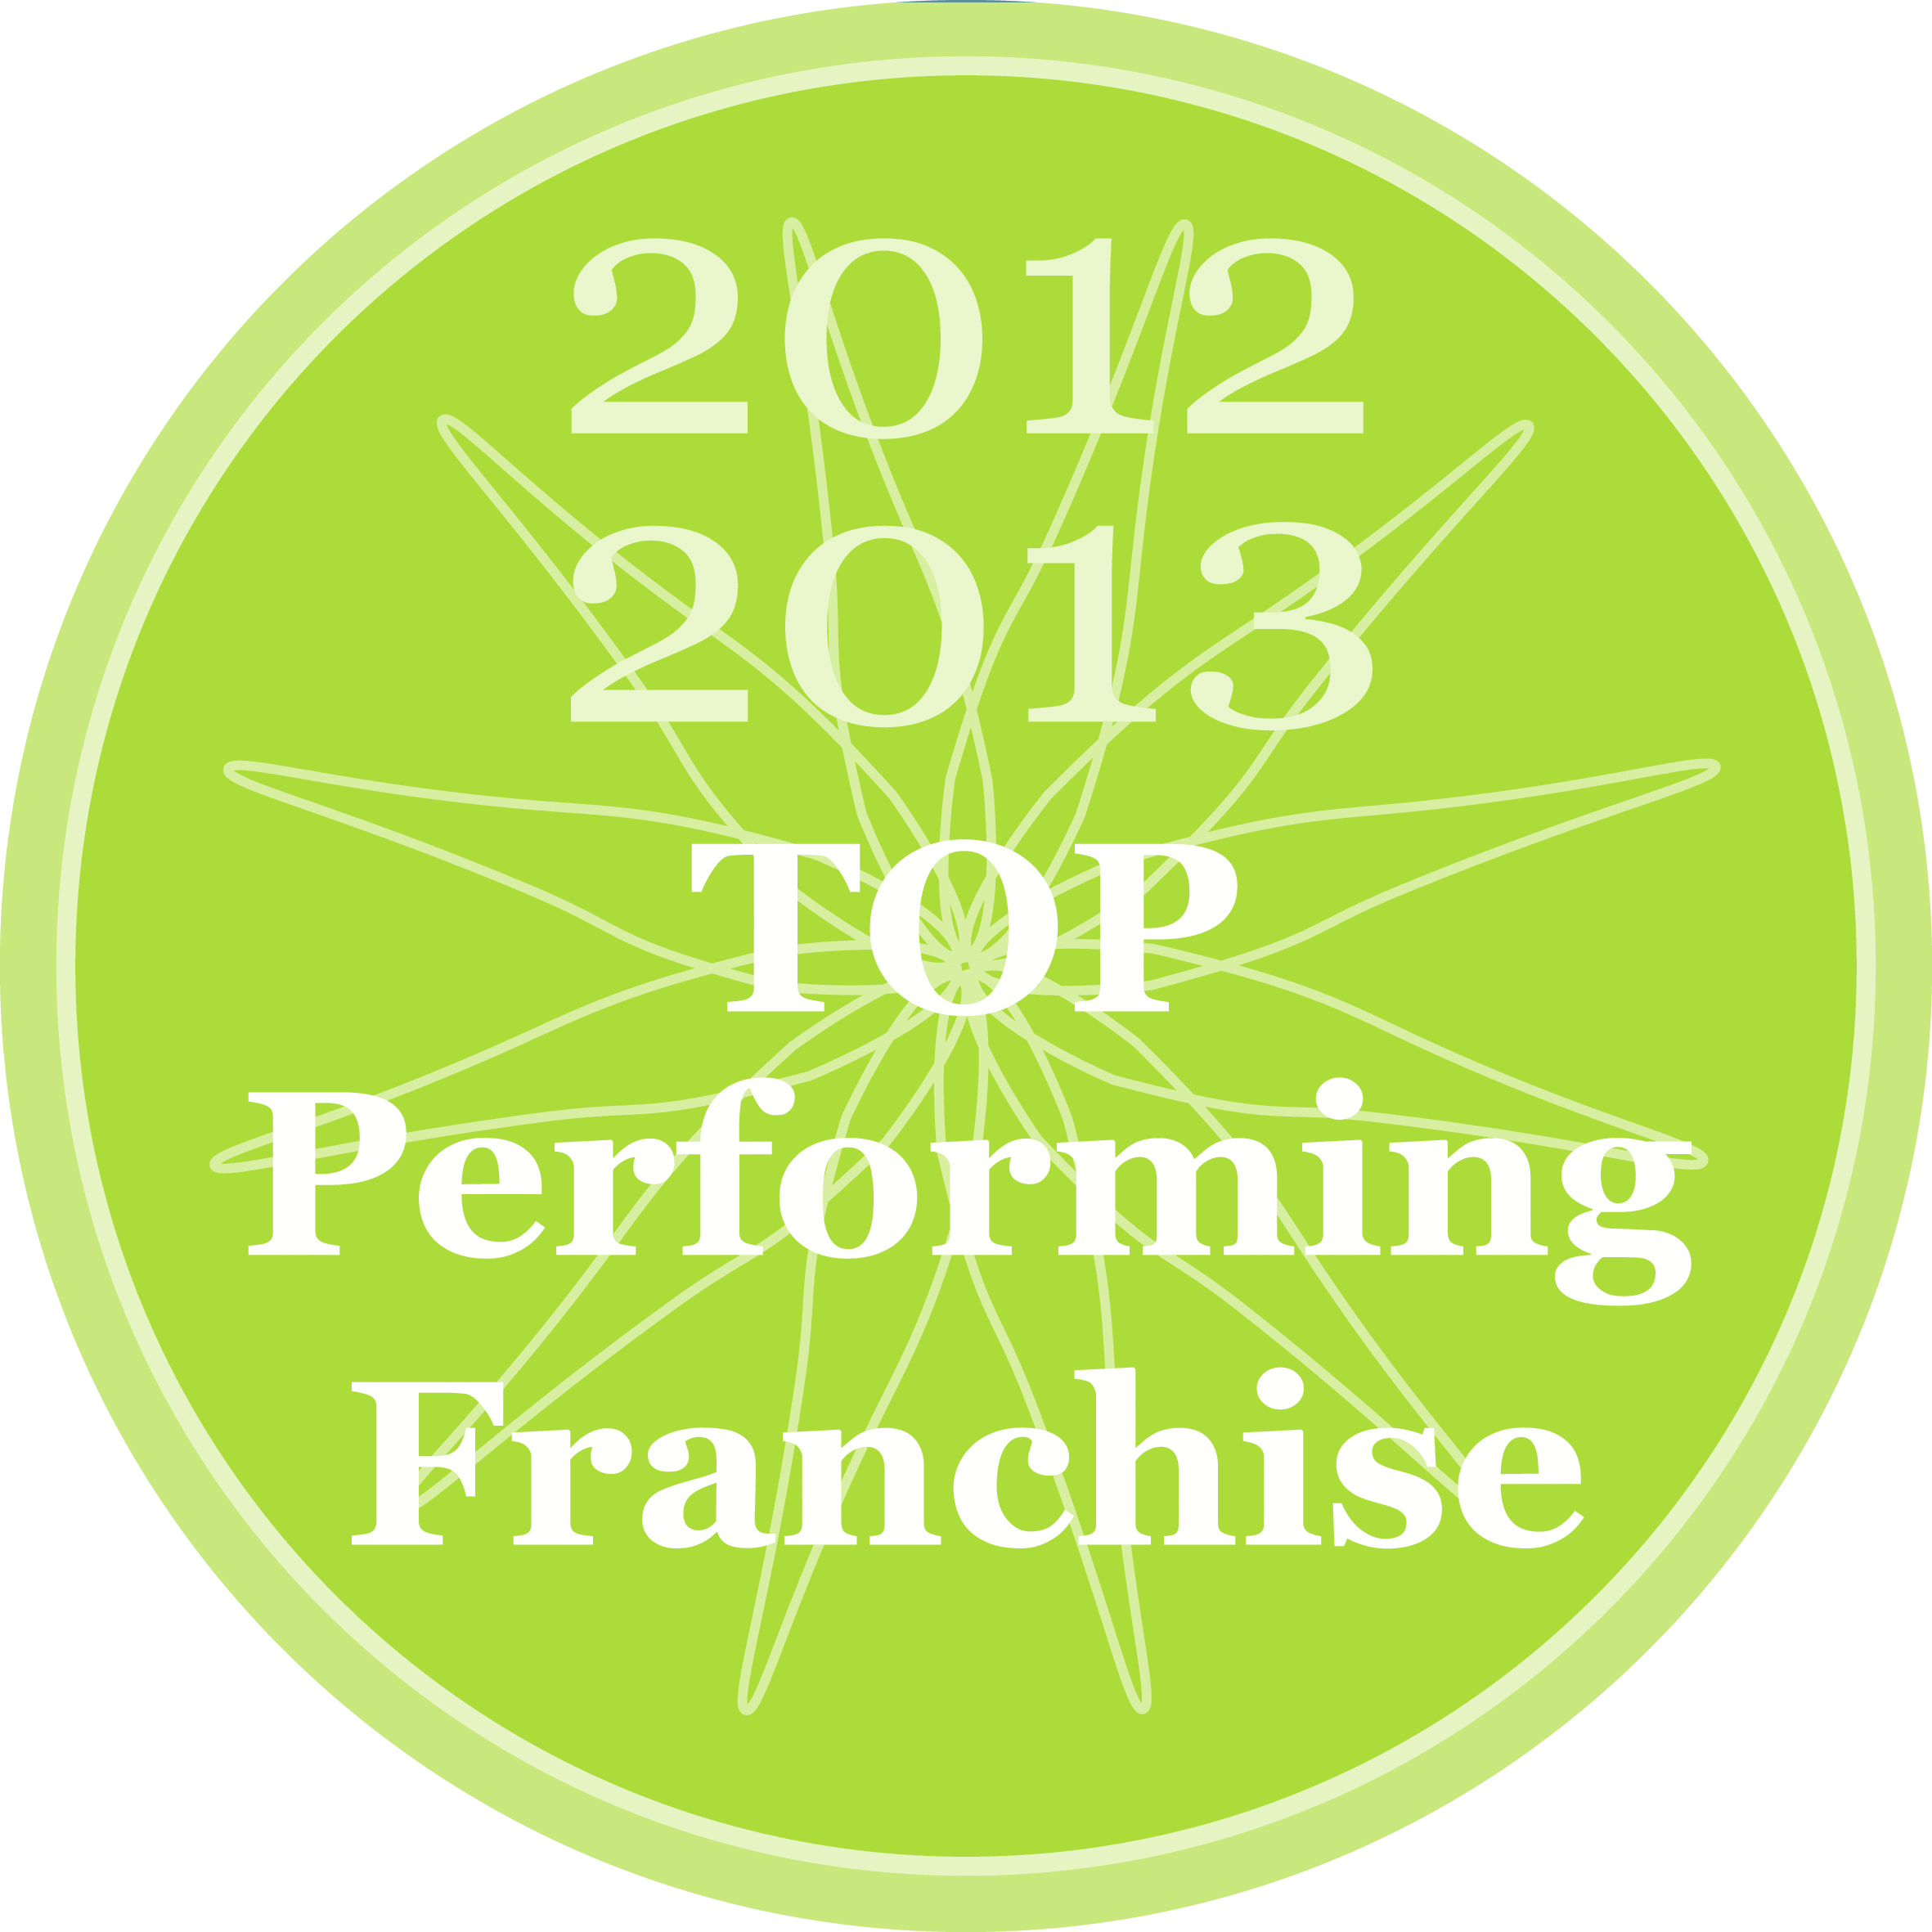 2013 top performers franchise